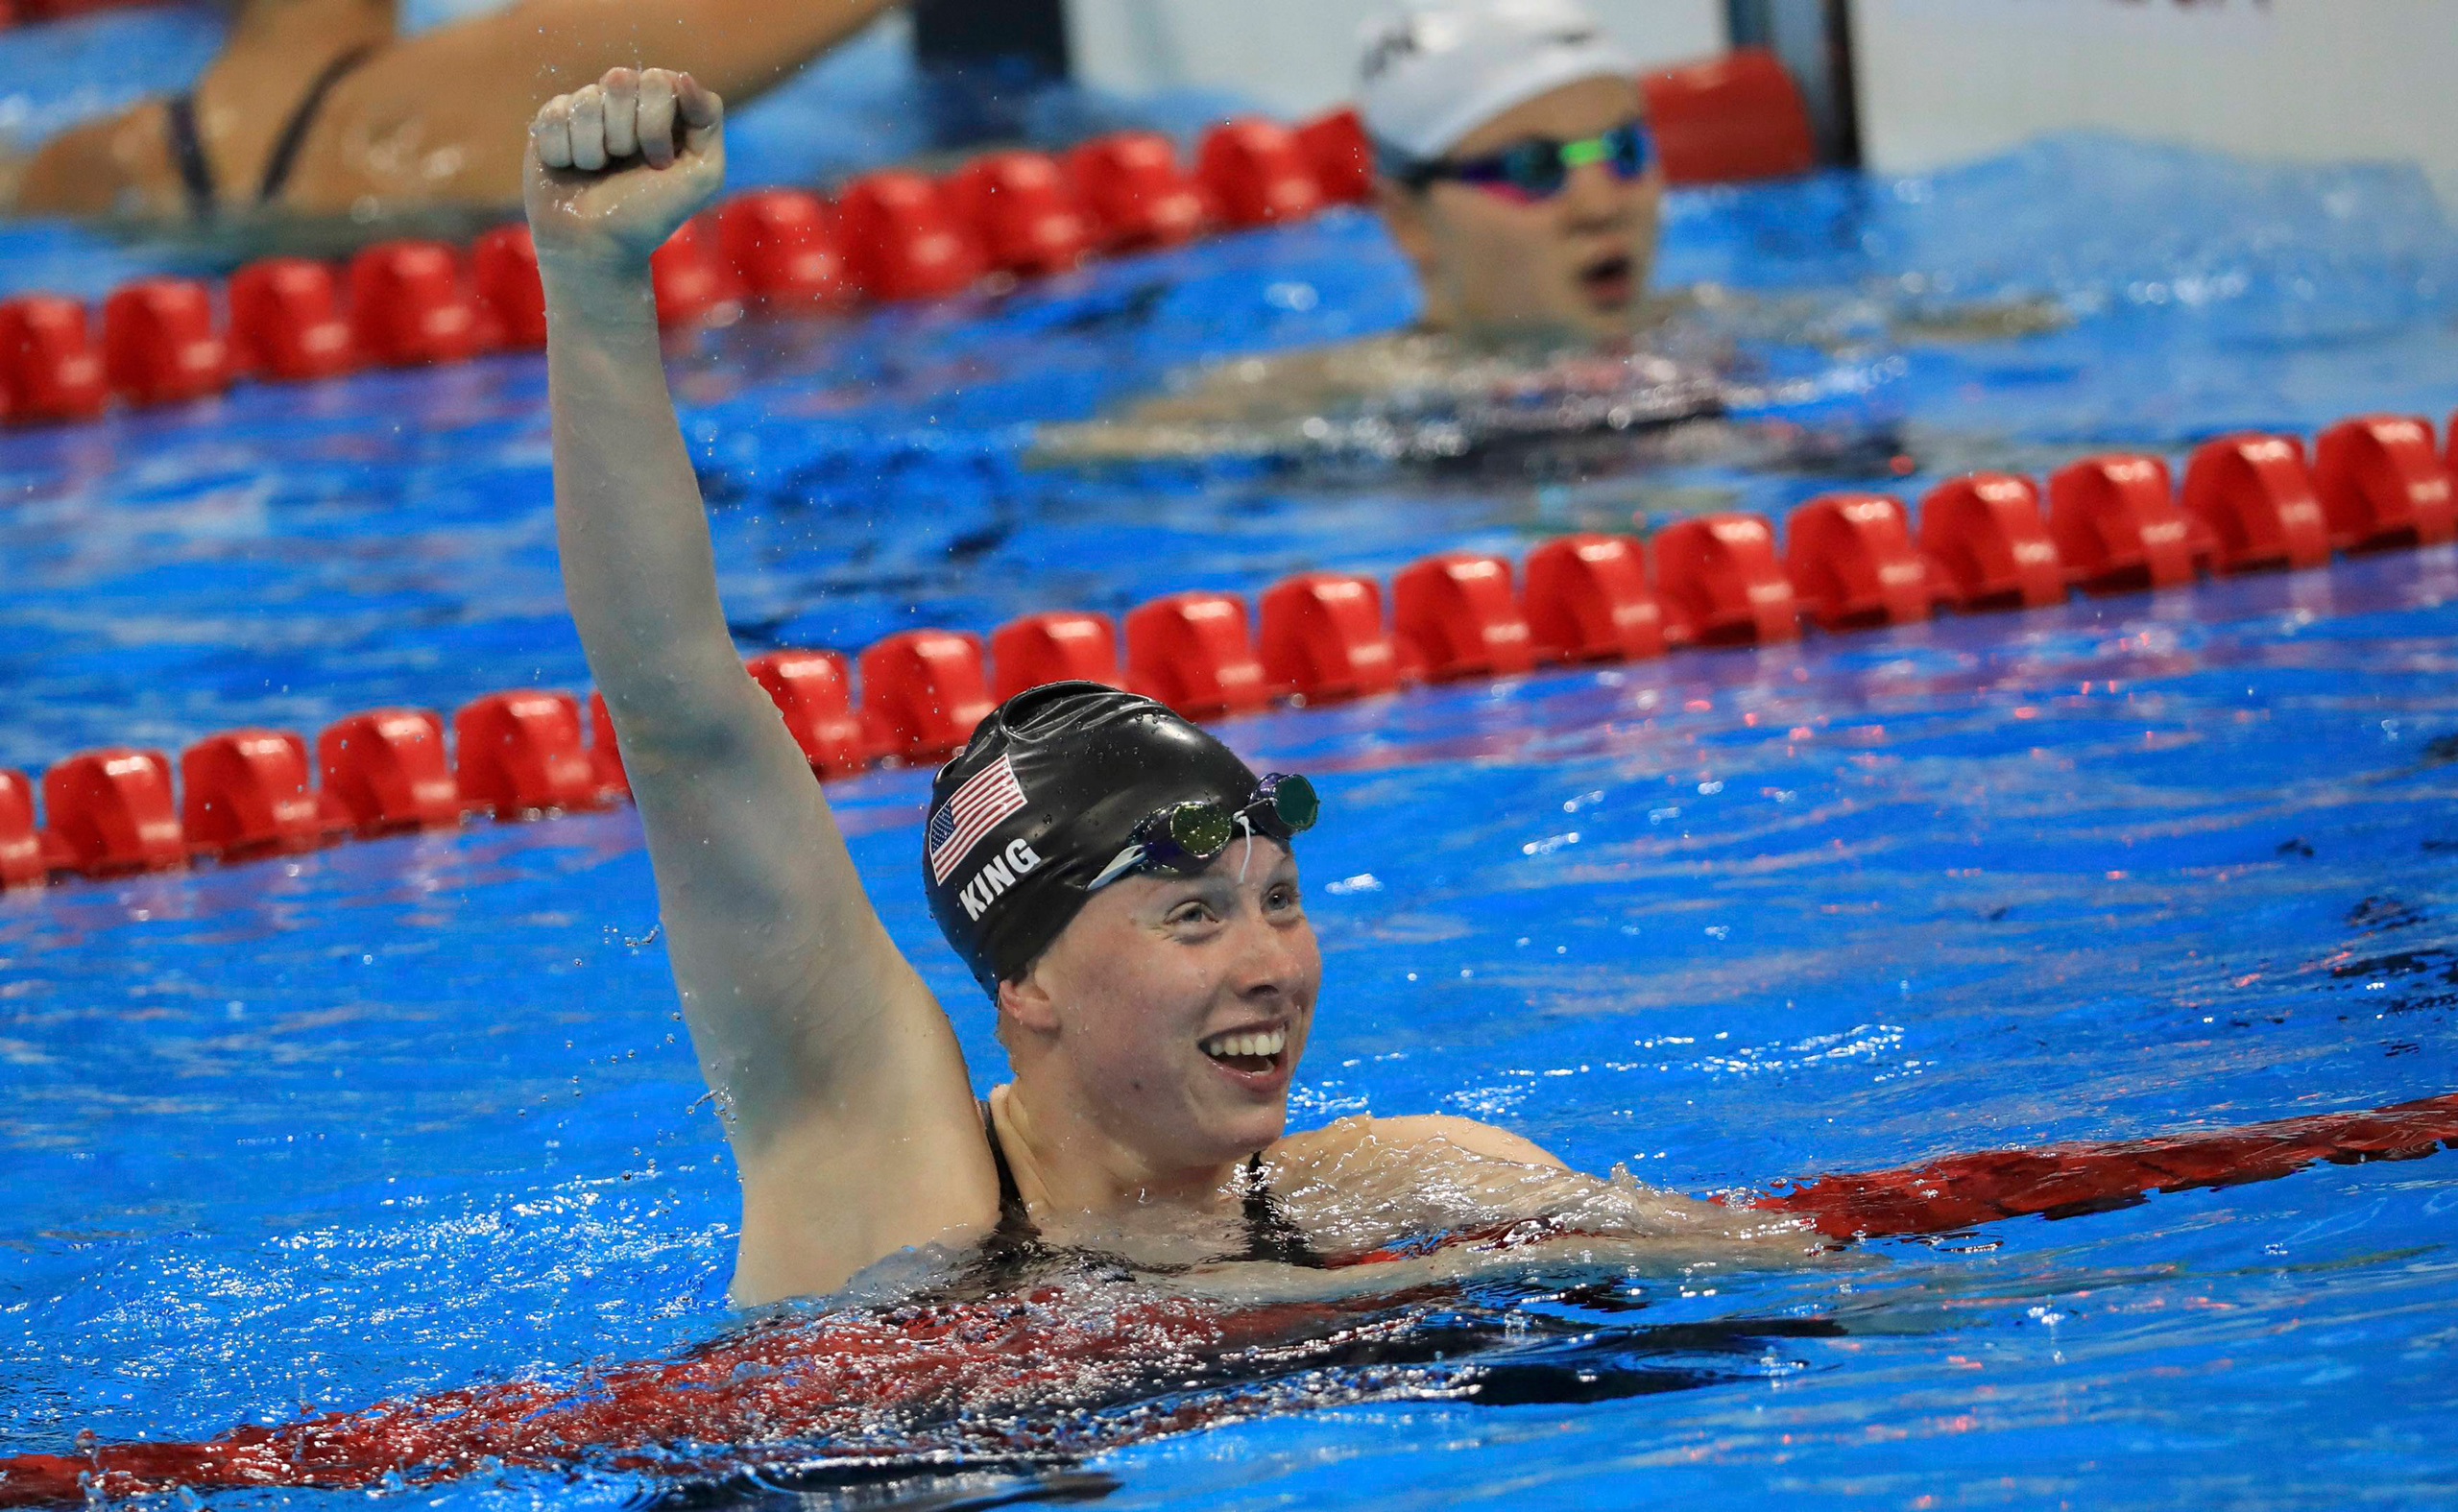 Lilly King of USA reacts after winning the gold medal at the Women's 100m Breaststroke Final at the 2016 Rio Olympics, held at the Olympic Aquatics Stadium in Rio de Janeiro on Aug. 8, 2016.